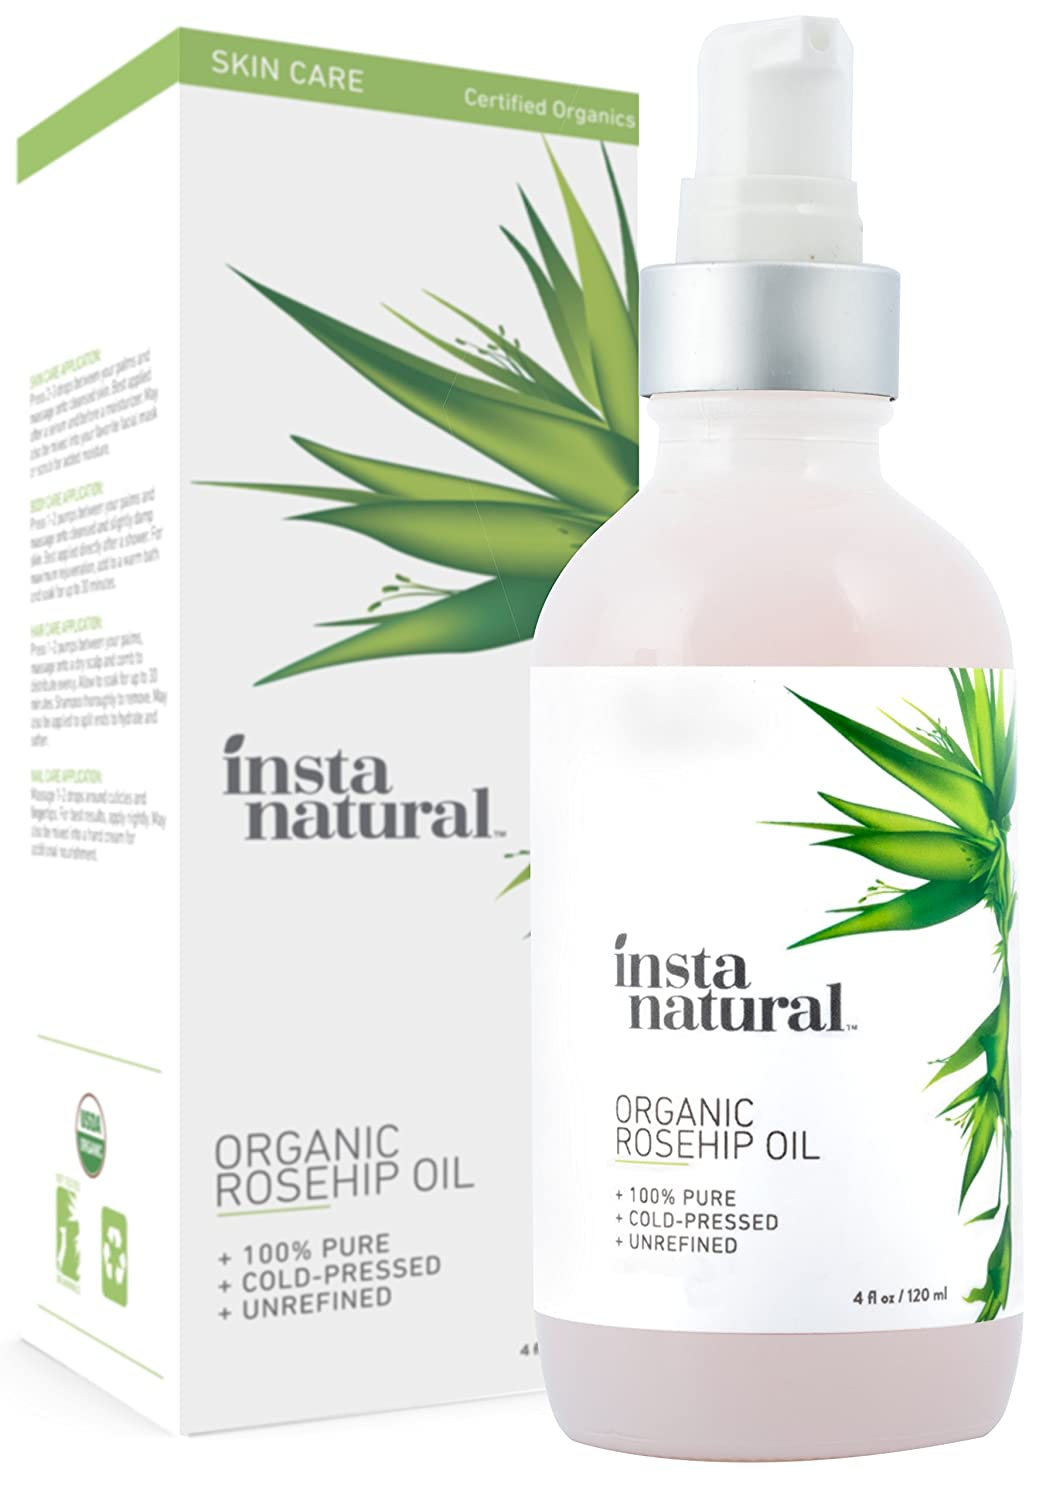 Organic Rosehip Seed Oil from InstaNatural